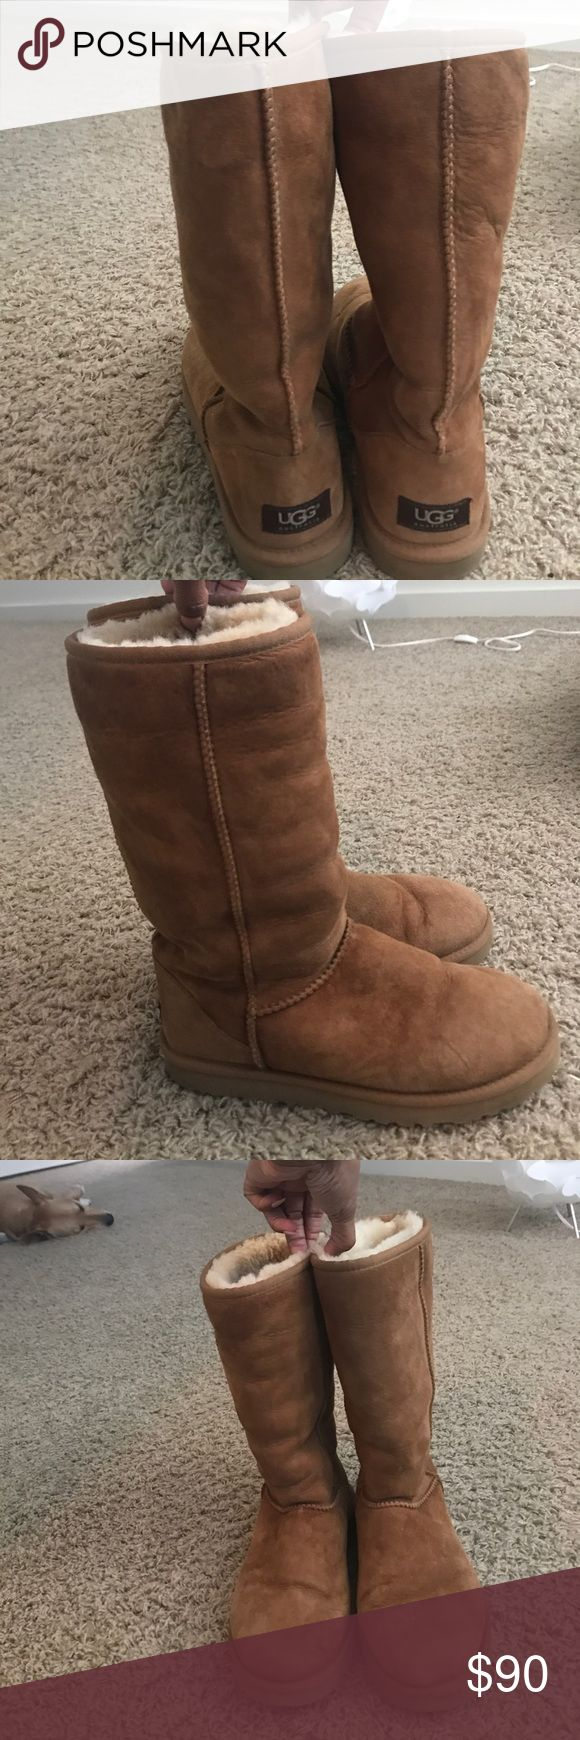 Australian Uggs tan size 8 women's Women's size 8. Preowned.7:10 condition. Worn in the snow without protector so there's some vague fading but other than that they are in great condition. Only work one winter UGG Shoes Winter & Rain Boots